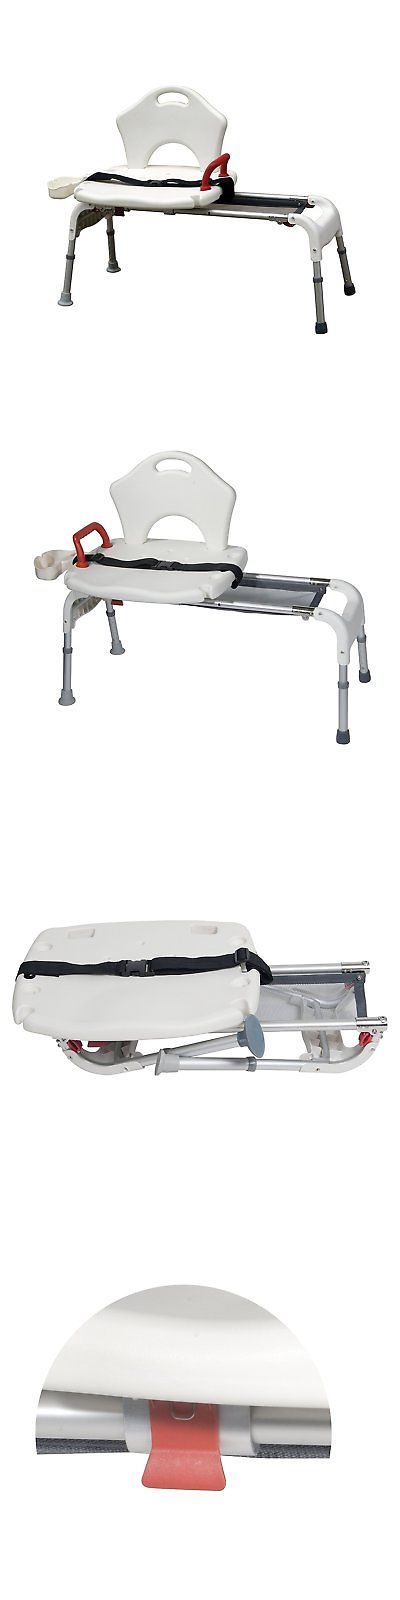 Transfer Boards and Benches: Drive Medical Folding Universal Sliding Transfer Bench -> BUY IT NOW ONLY: $141.59 on eBay!